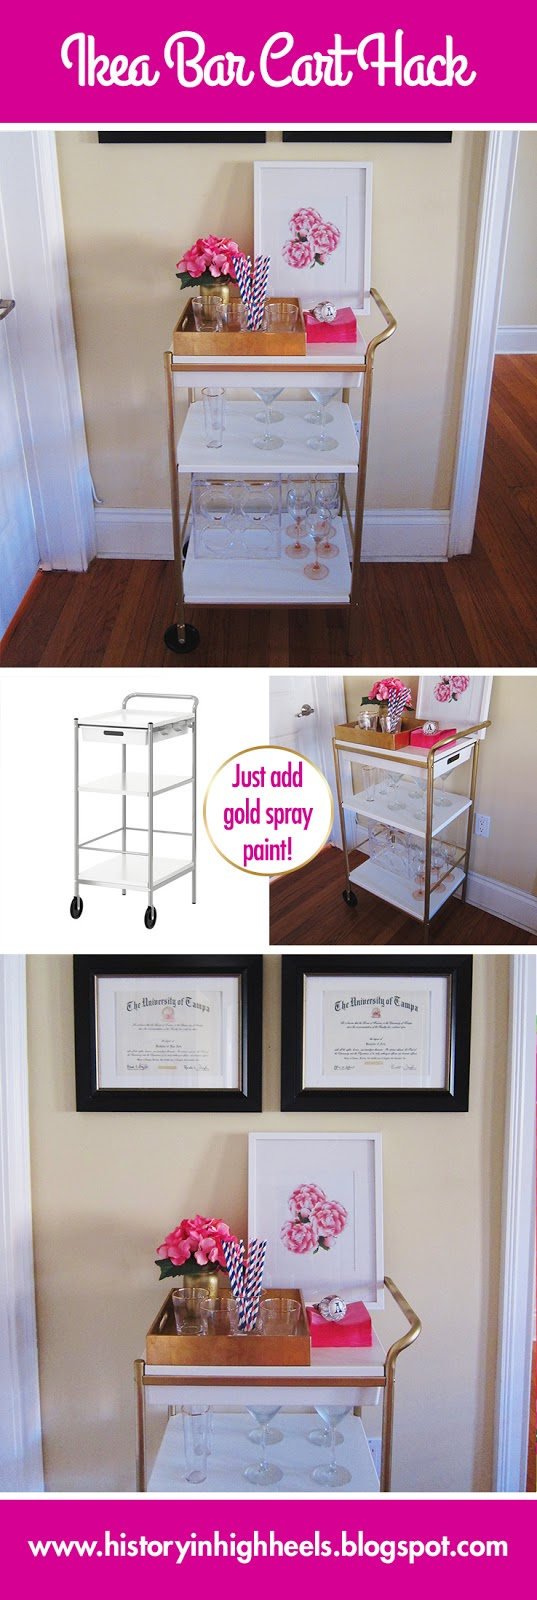 Ikea Bar Cart Hack Pinterest